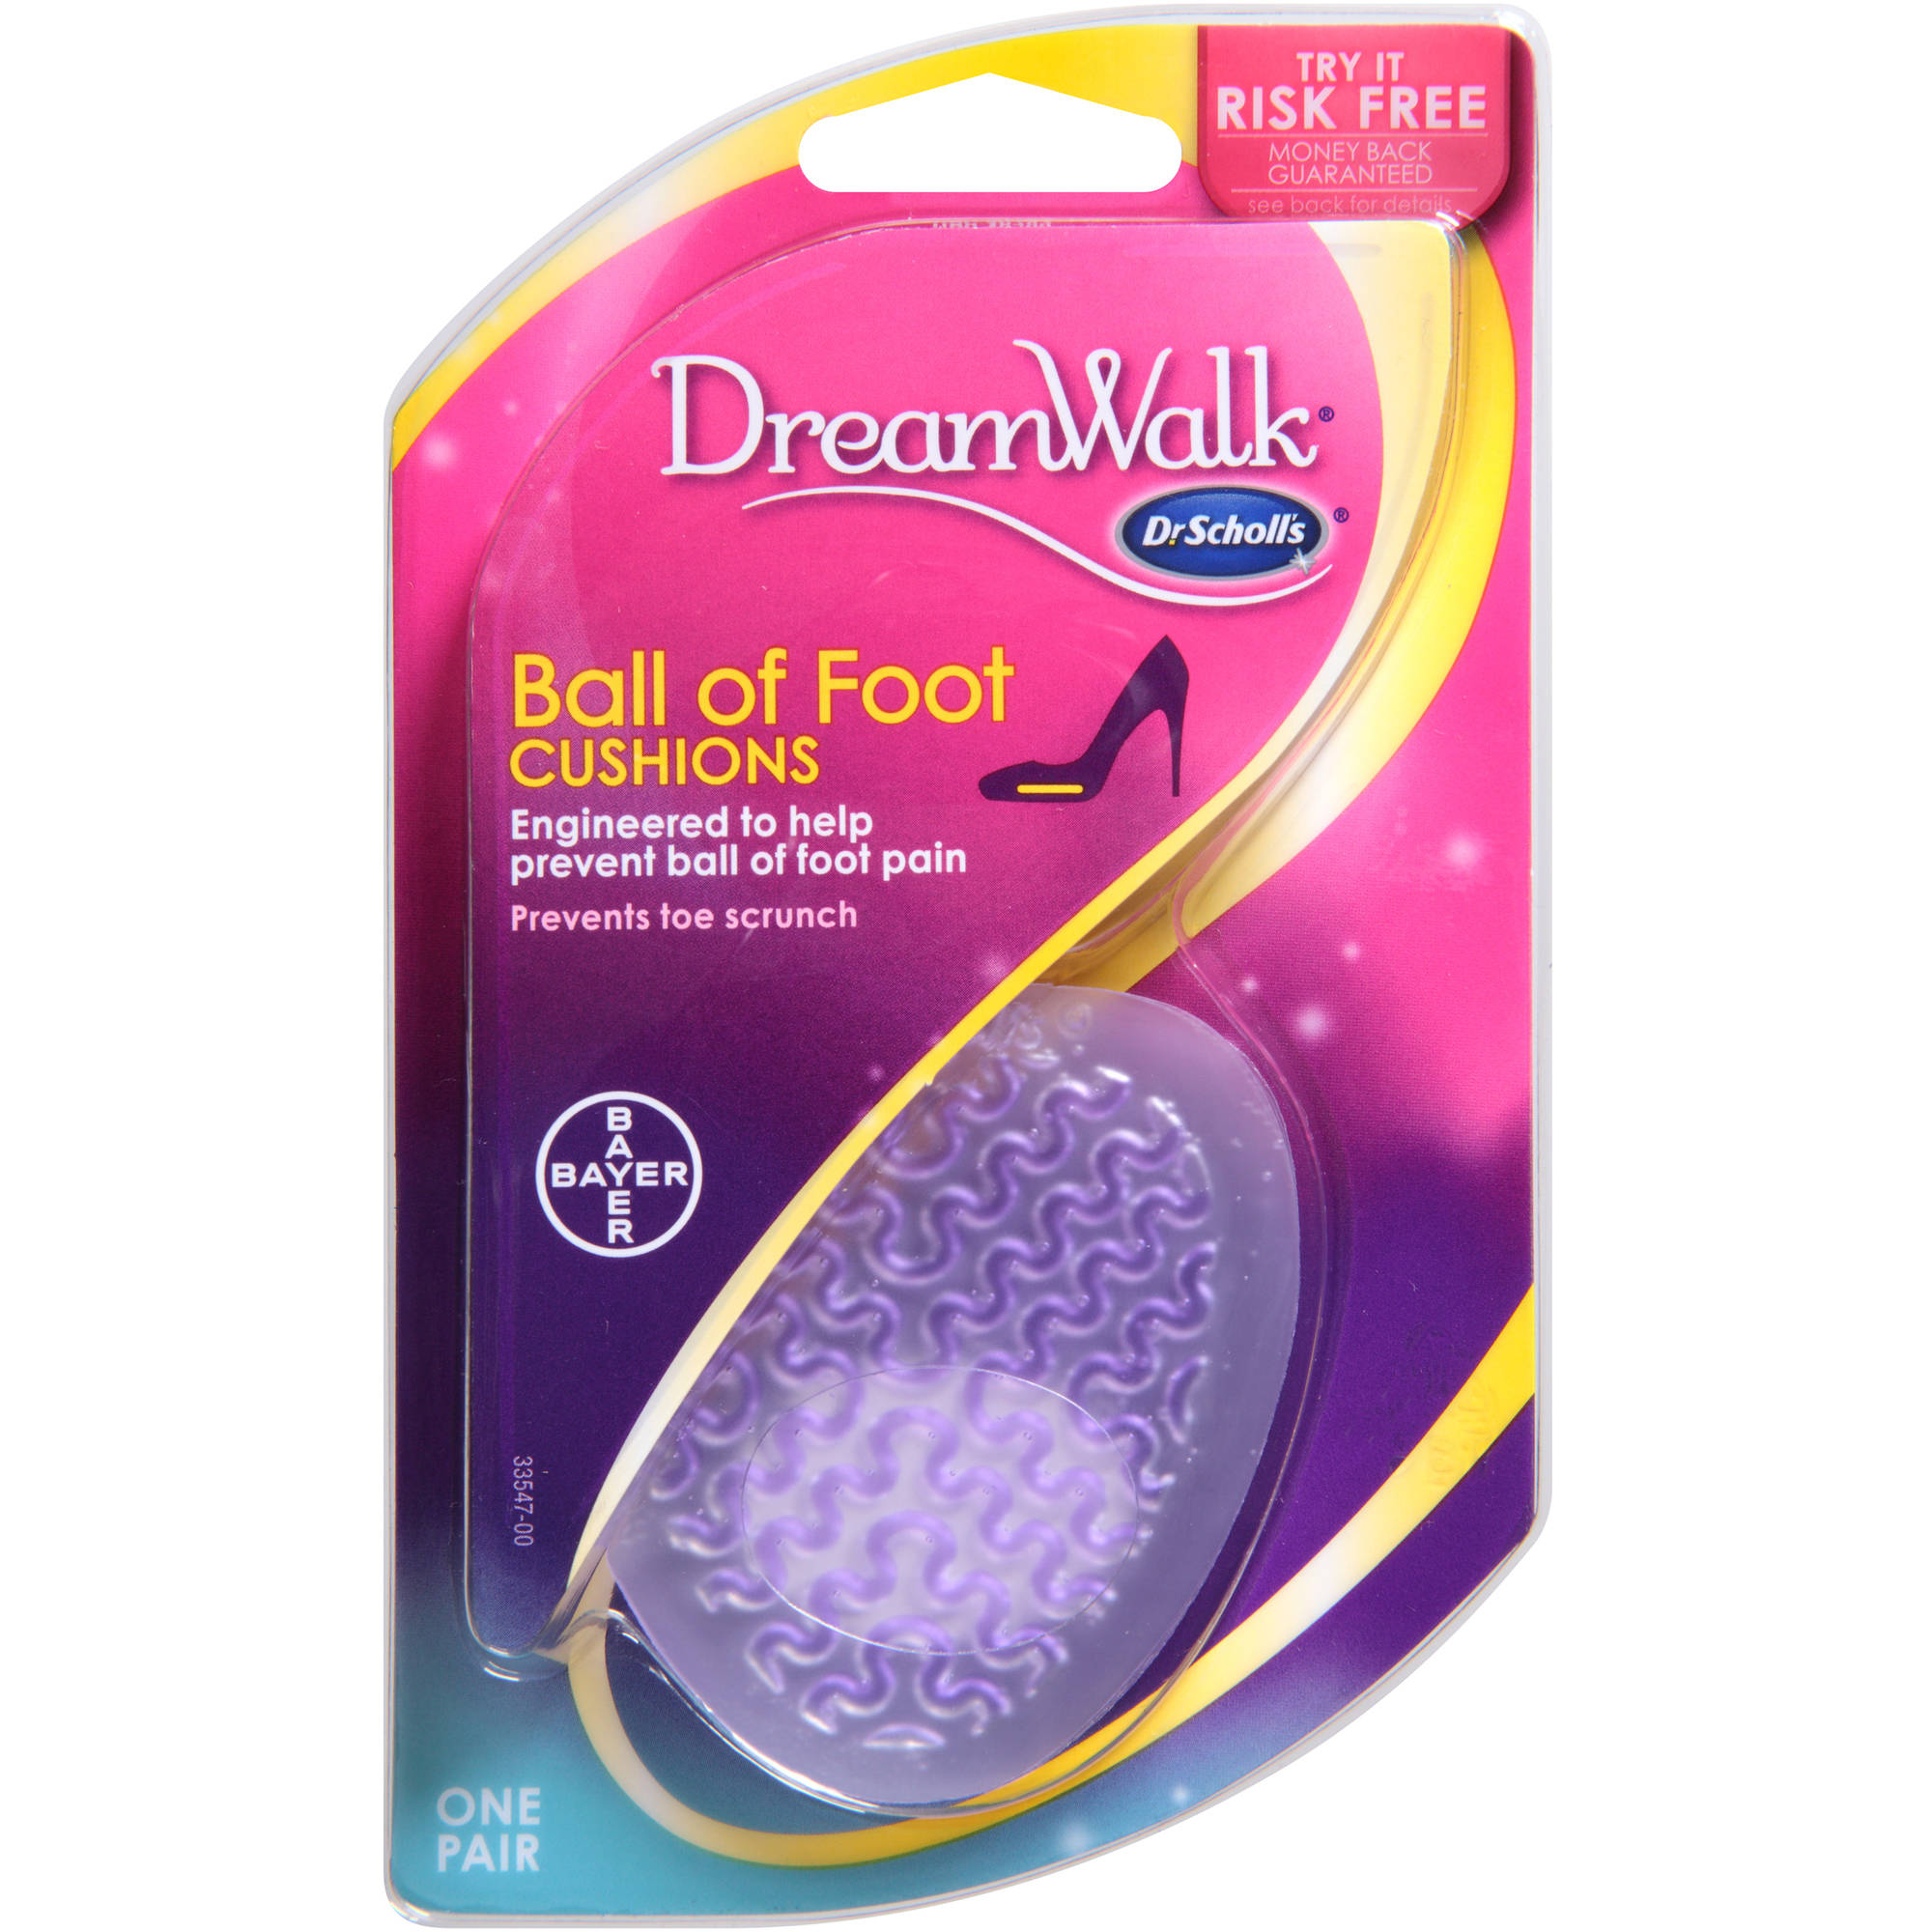 Dr. Scholl's DreamWalk Ball of Foot Cushions, 1 pr